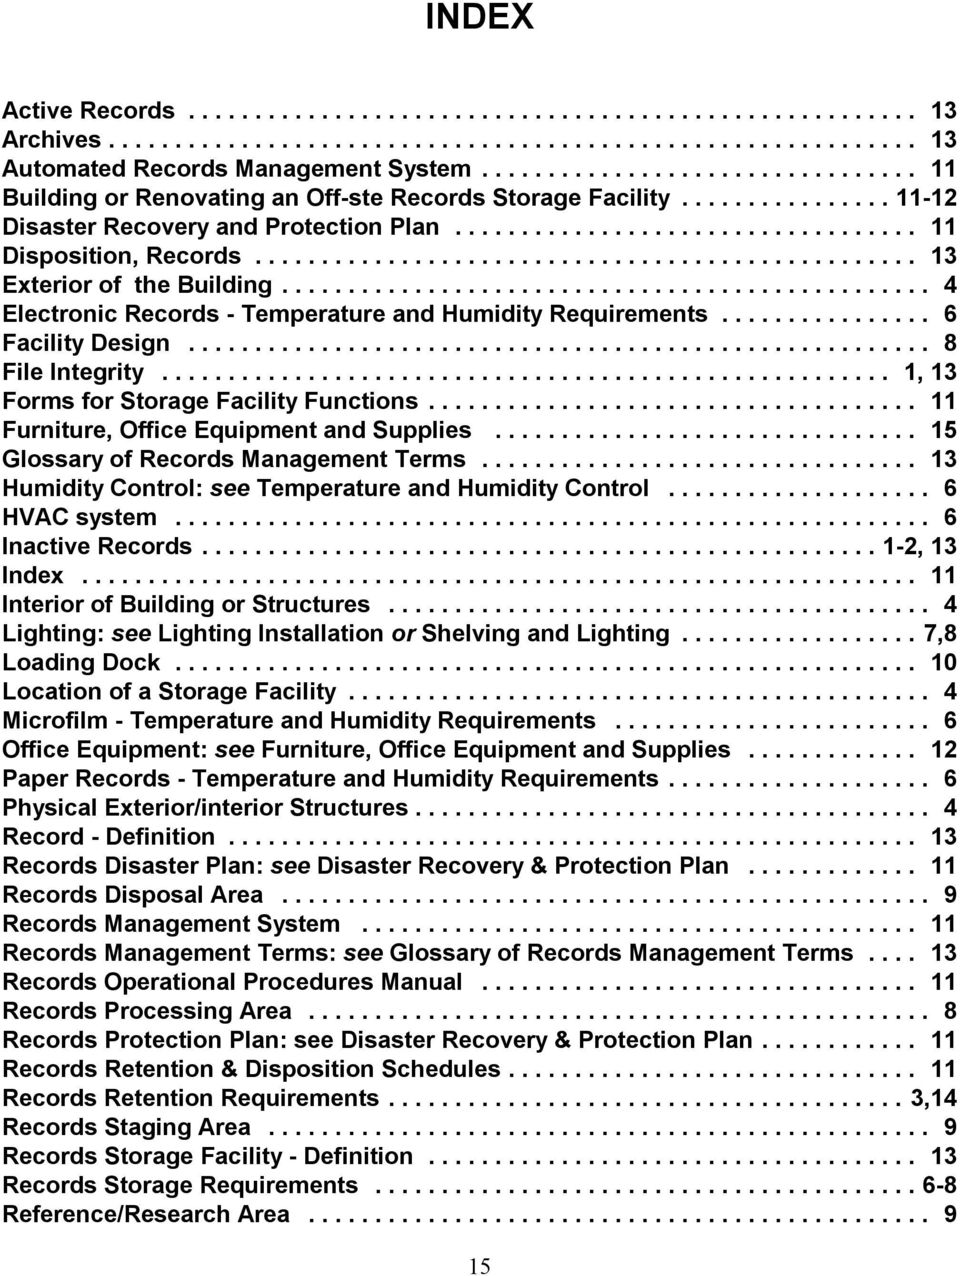 .. 1, 13 Forms for Storage Facility Functions... 11 Furniture, Office Equipment and Supplies... 15 Glossary of Records Management Terms... 13 Humidity Control: see Temperature and Humidity Control.